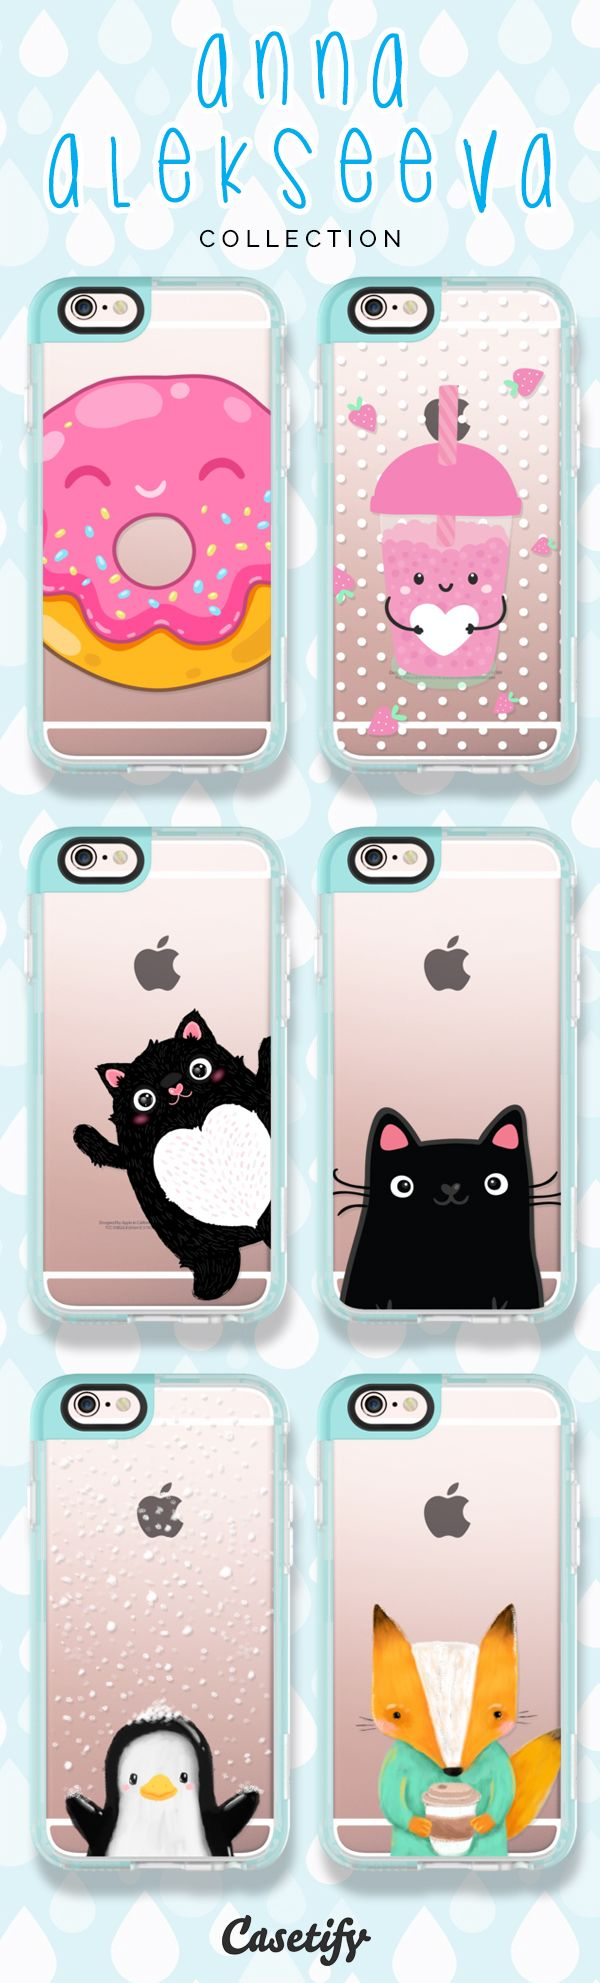 Take a look at these cute designs by @kostolom3000 on our site now! https://www.casetify.com/kostolom3000/collection | @casetify